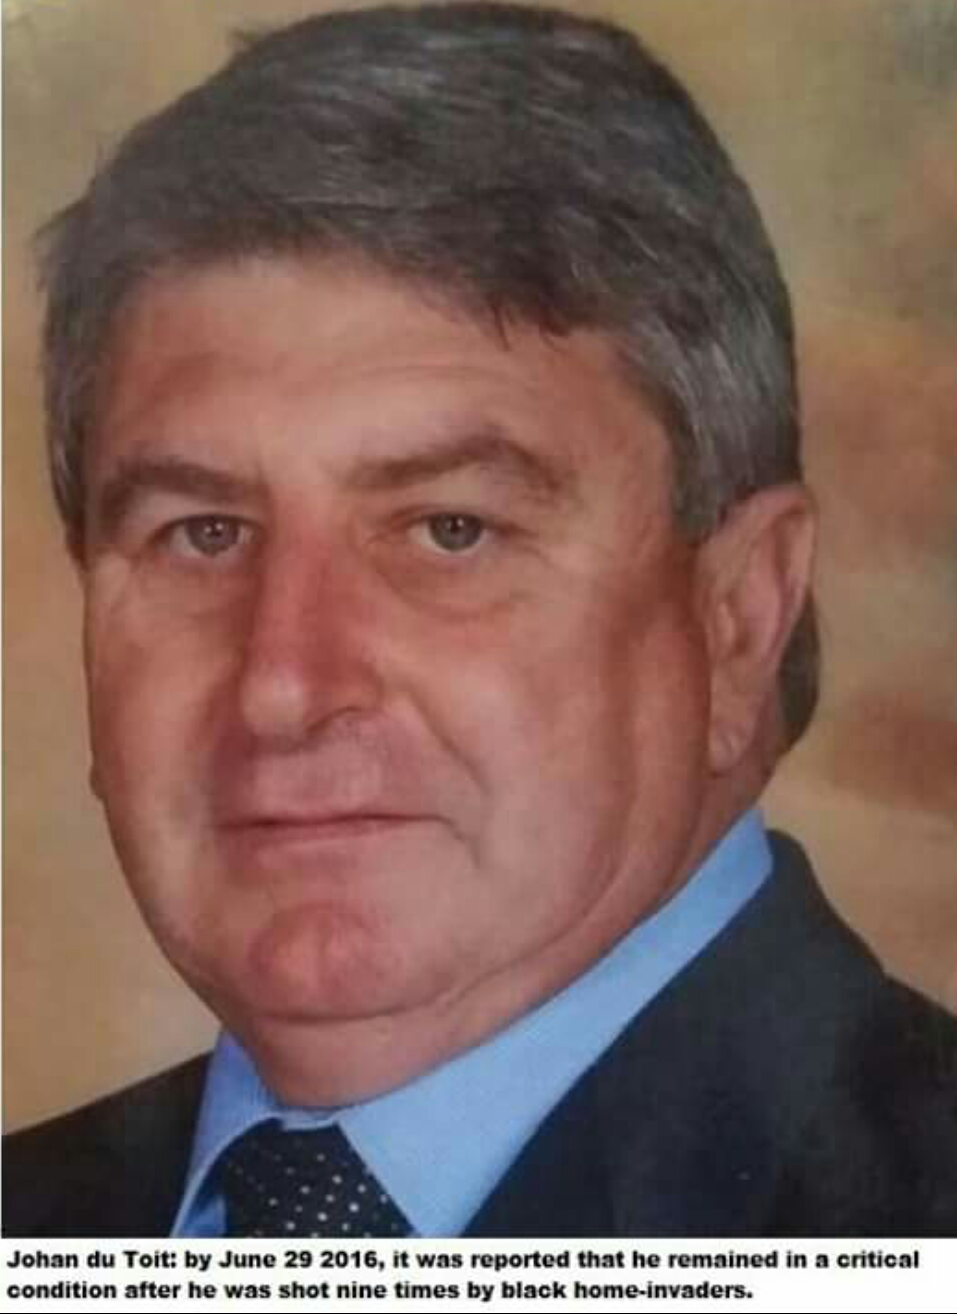 #ATTACK: UPDATE: Still critical: #Akasia deputy-headmaster Johan du Toit (58) shot nine times and remains in a critical condition in hospital: